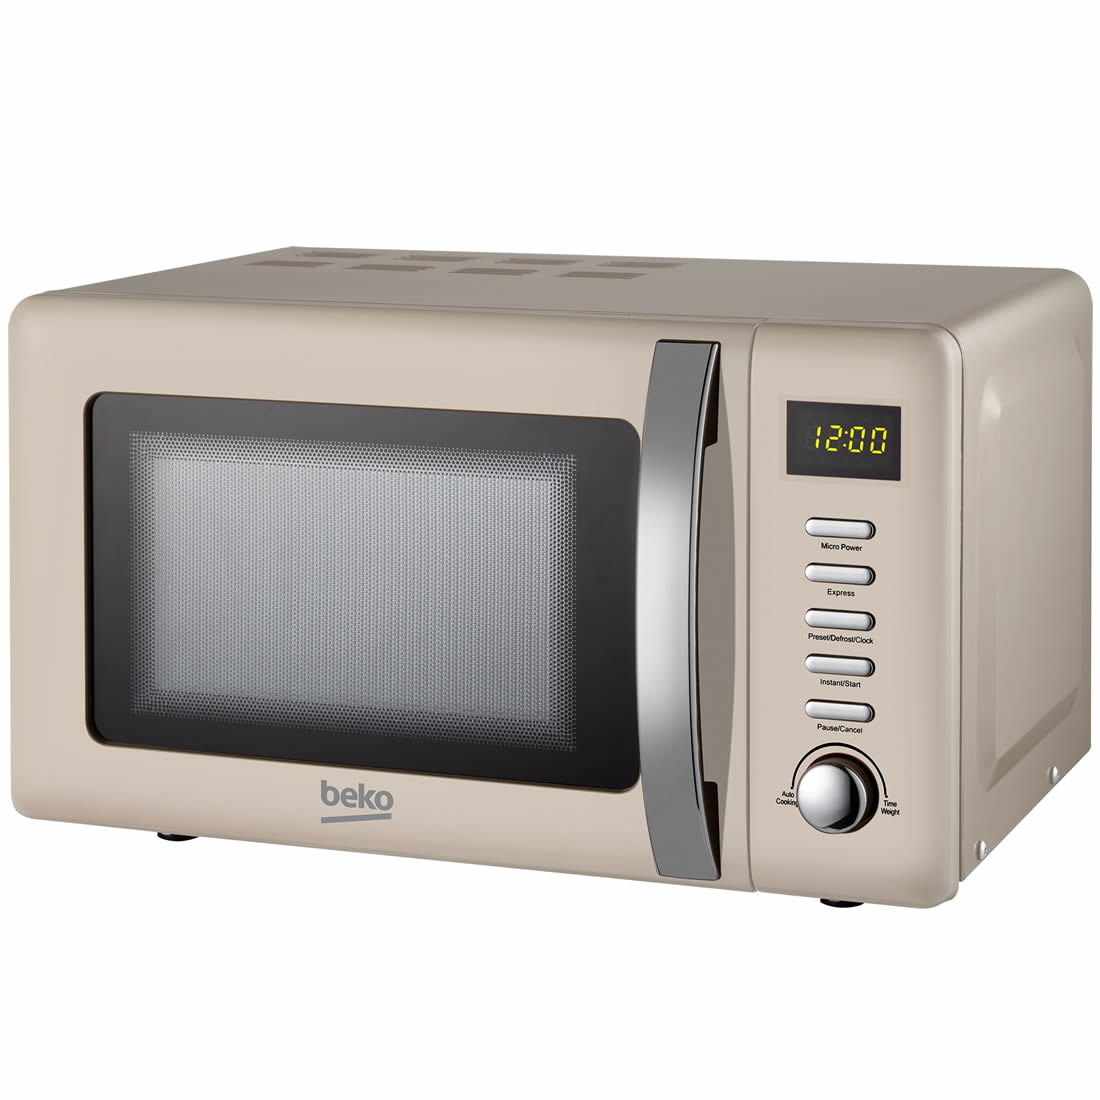 800Watts Microwave 20litres 5 Power Levels Cream